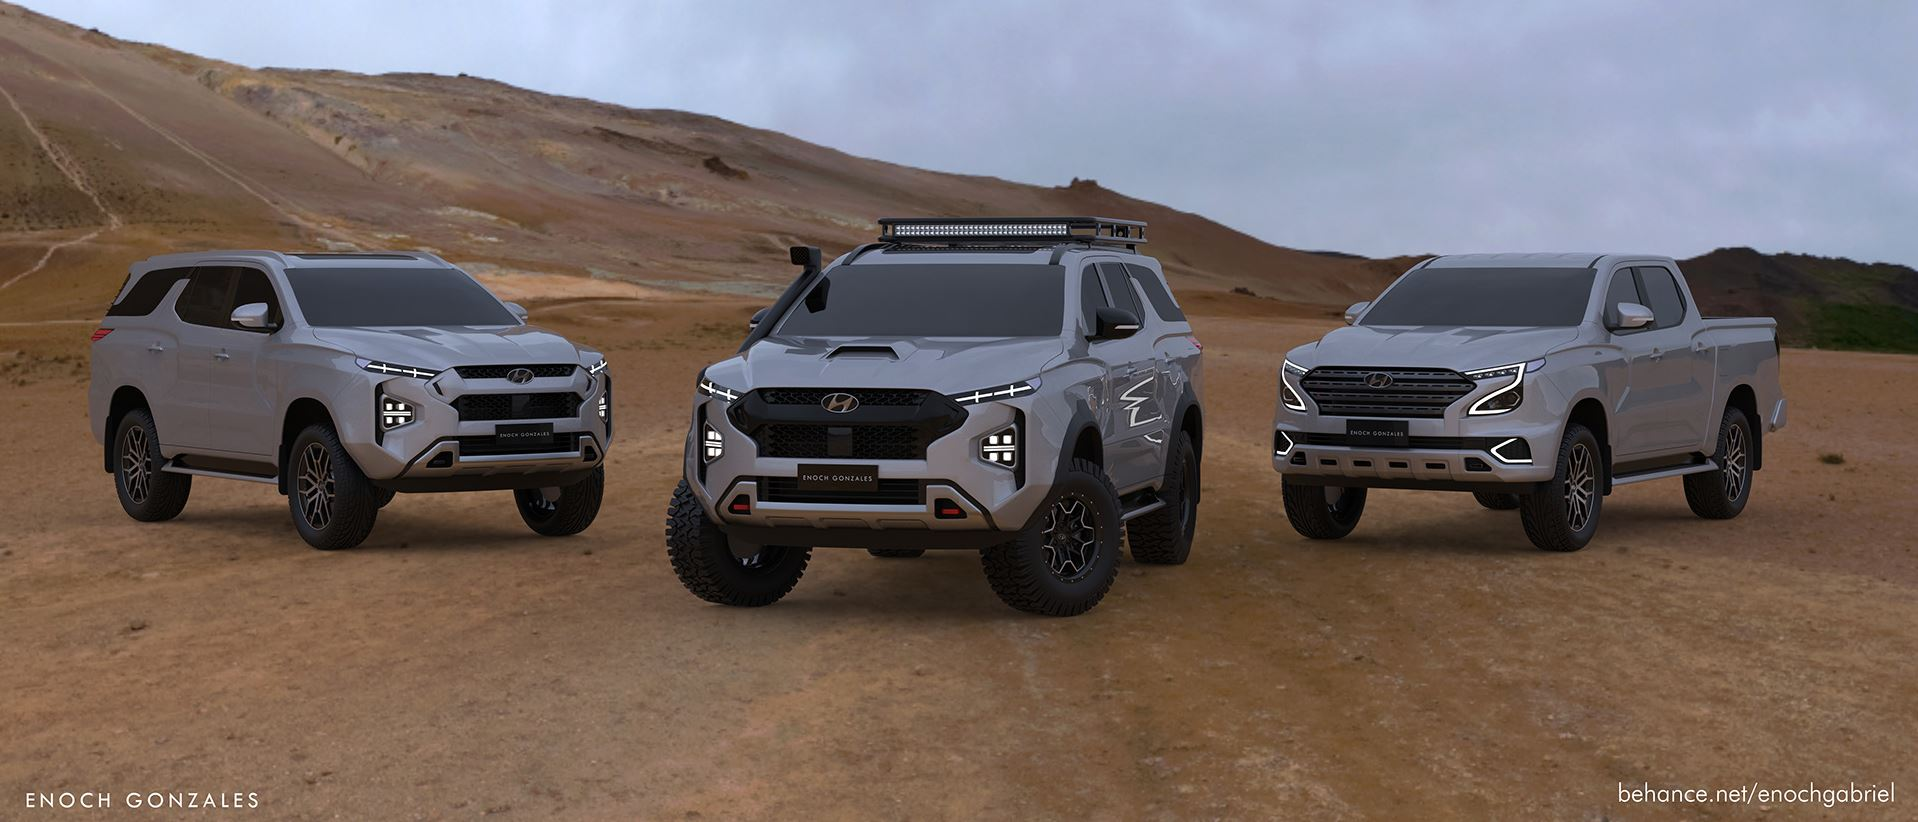 New Hyundai Body-On-Frame SUV Imagined as the 5 Terracan